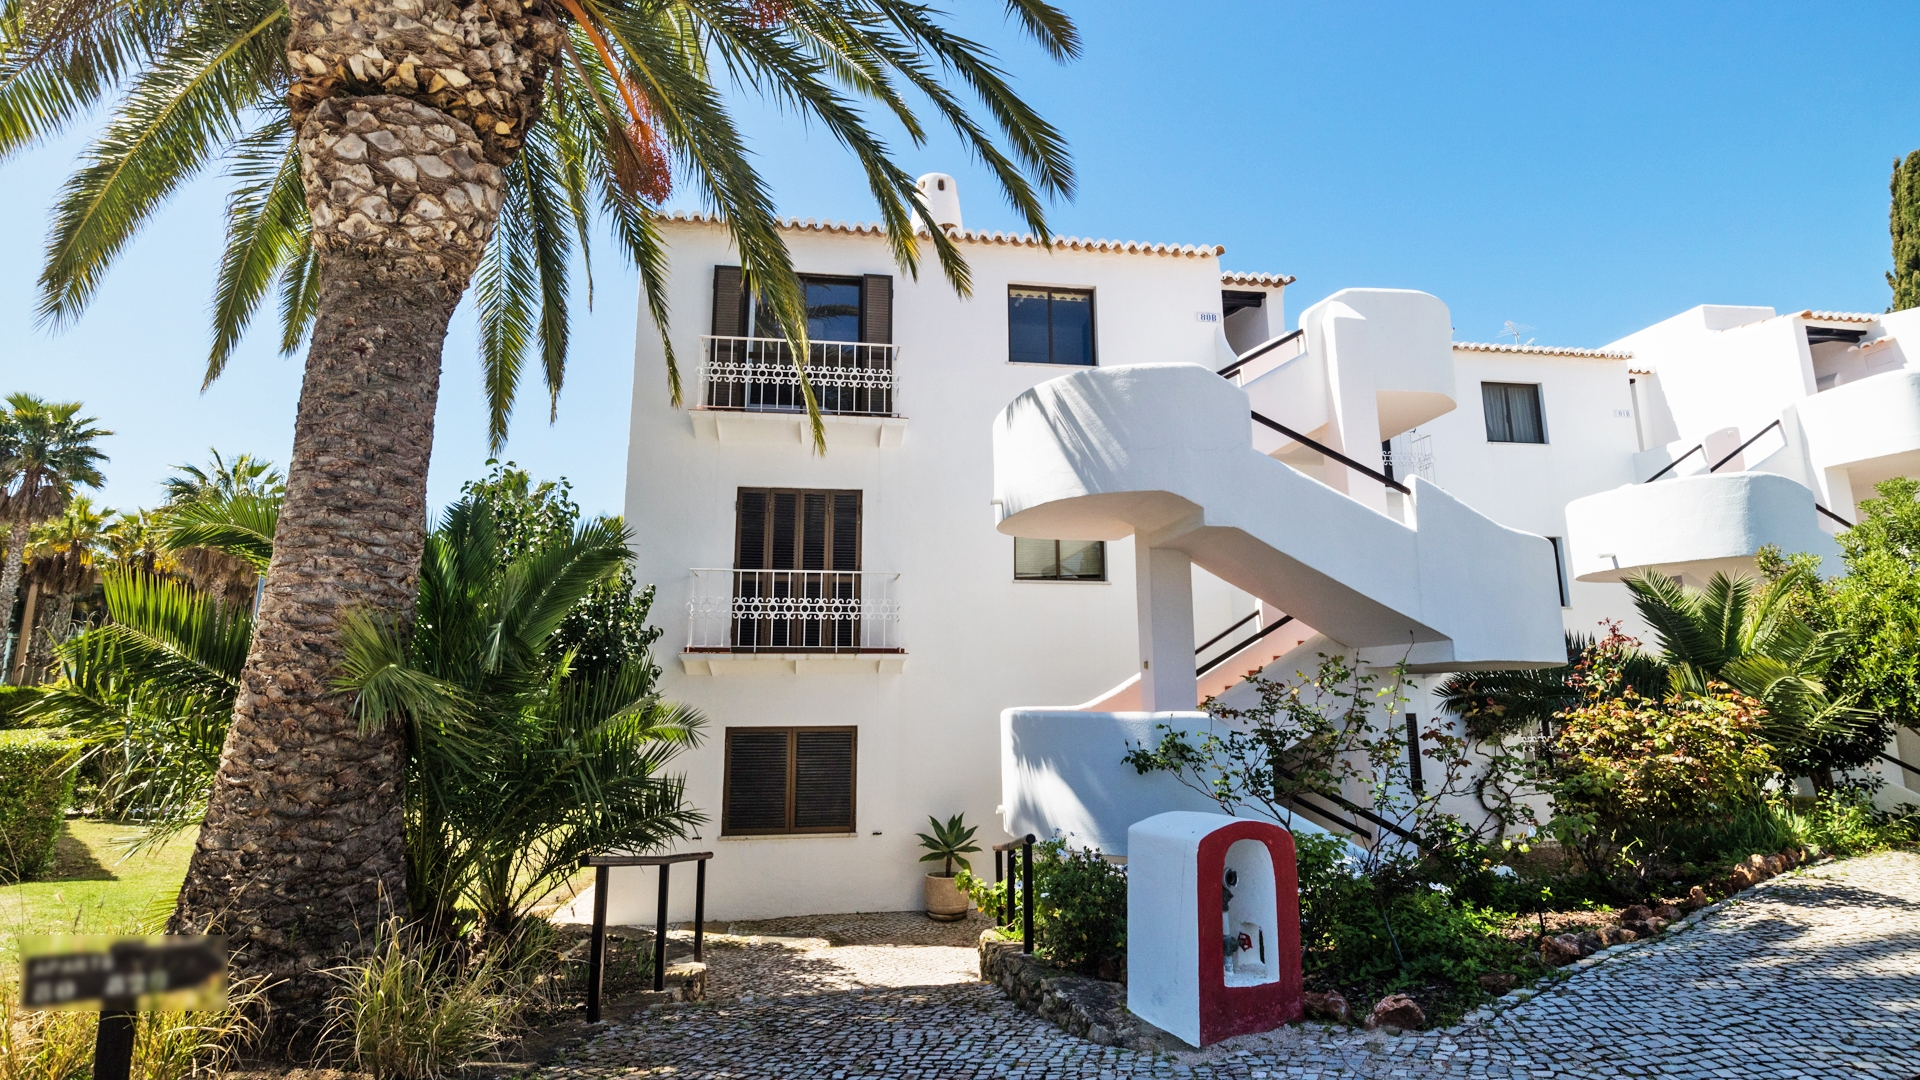 2 Bedroom Top Floor Apartment with Sea Views, Albufeira | VM1081 This top floor apartment has sea views and is just a few minutes walk to the nearest beach. With shops and restaurants nearby, this apartment makes a perfect rental investment